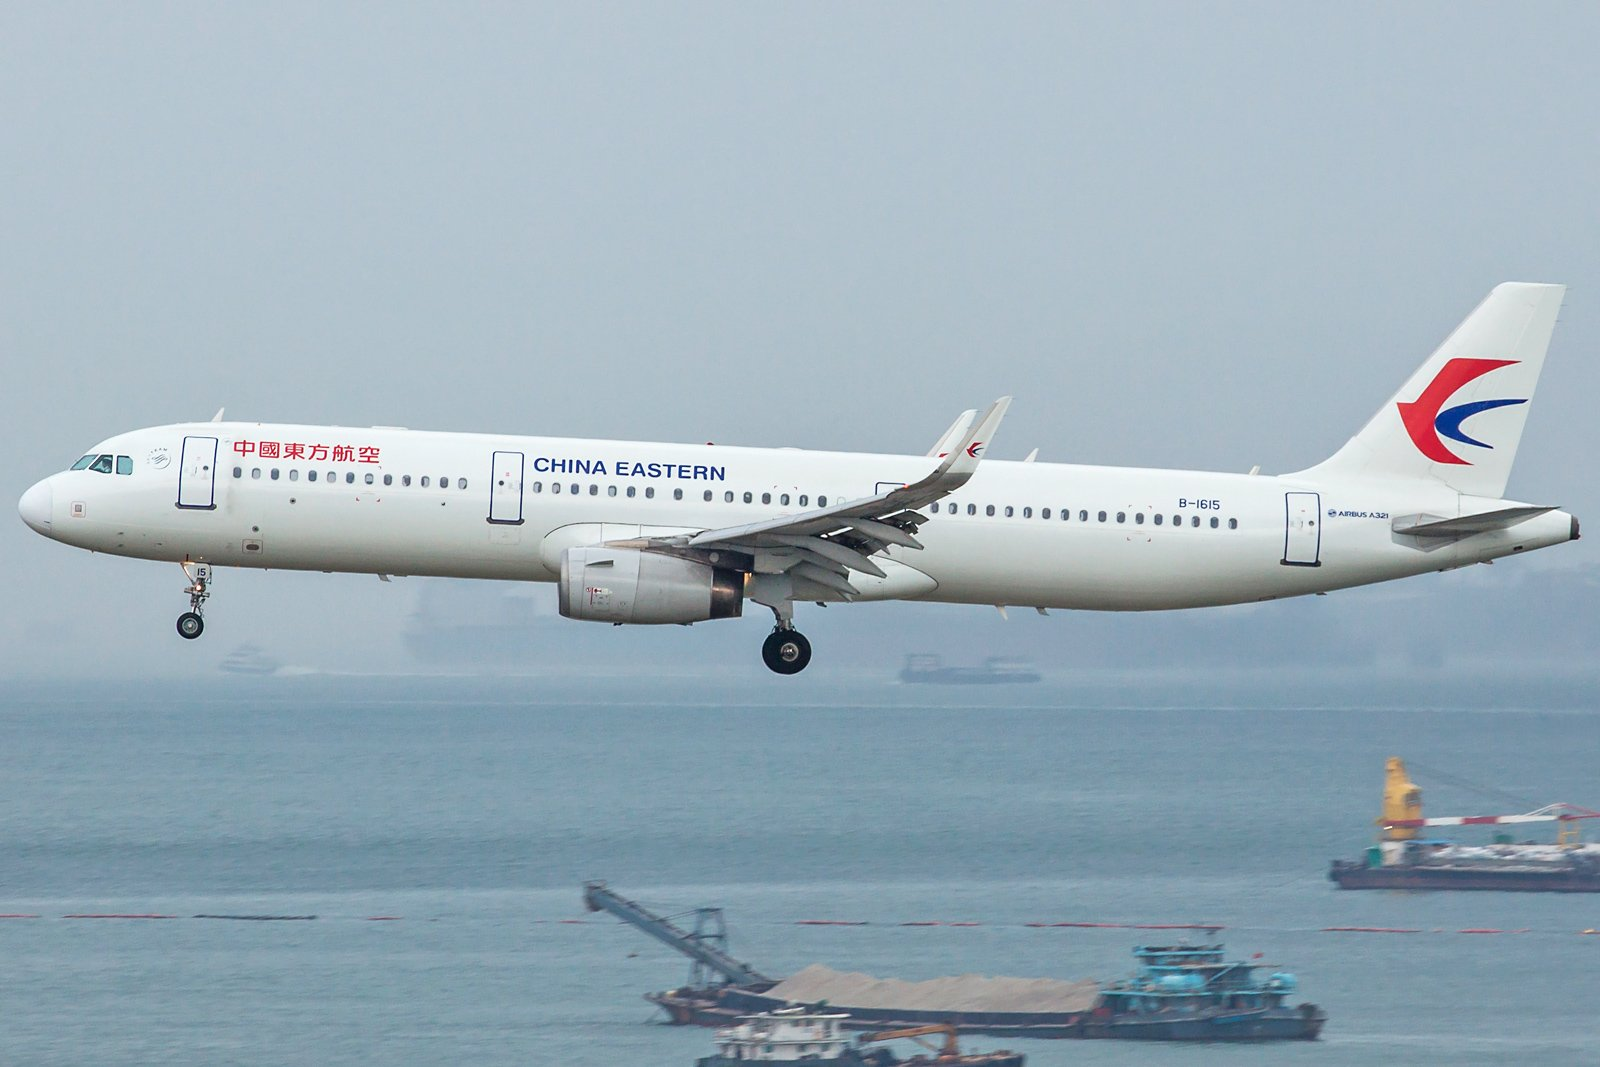 China Eastern Airlines Airbus A321-231(WL) B-1615